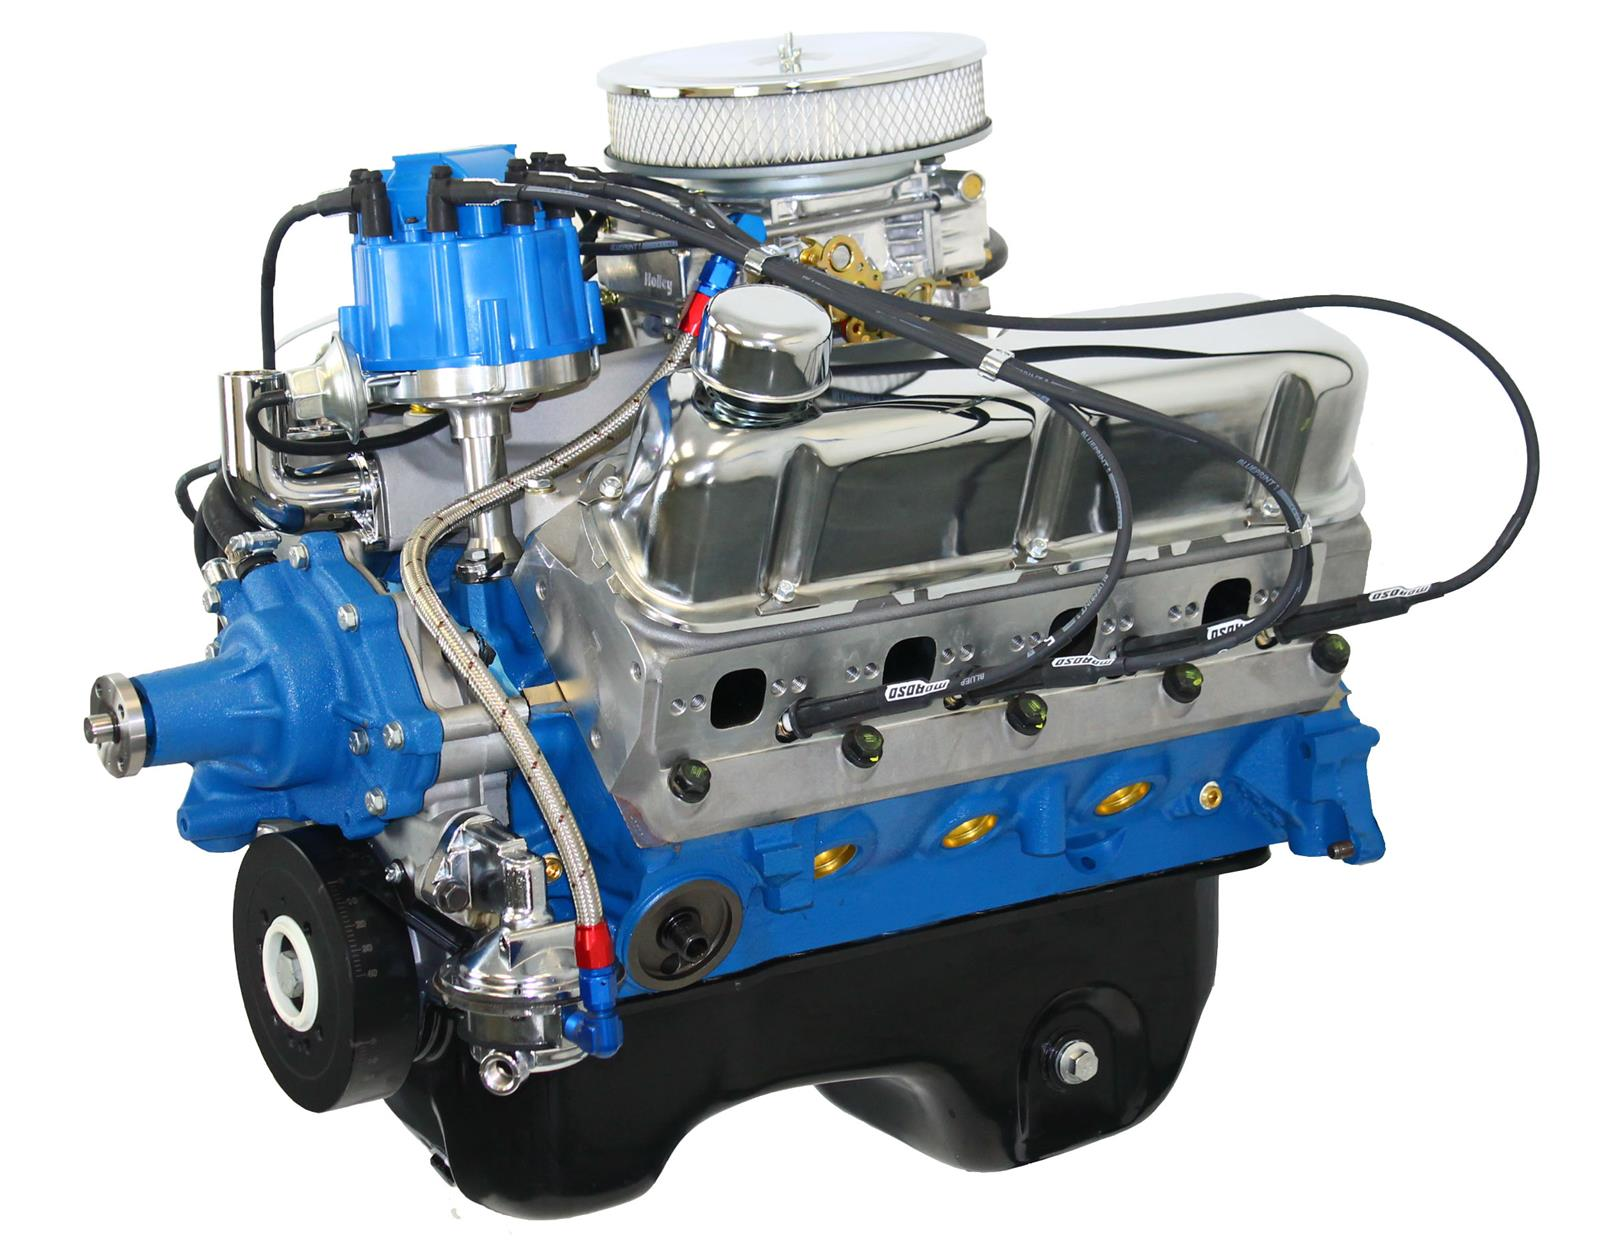 hight resolution of blueprint engines ford 306 c i d drop in ready long block crate engines bp3060ctcd free shipping on orders over 99 at summit racing